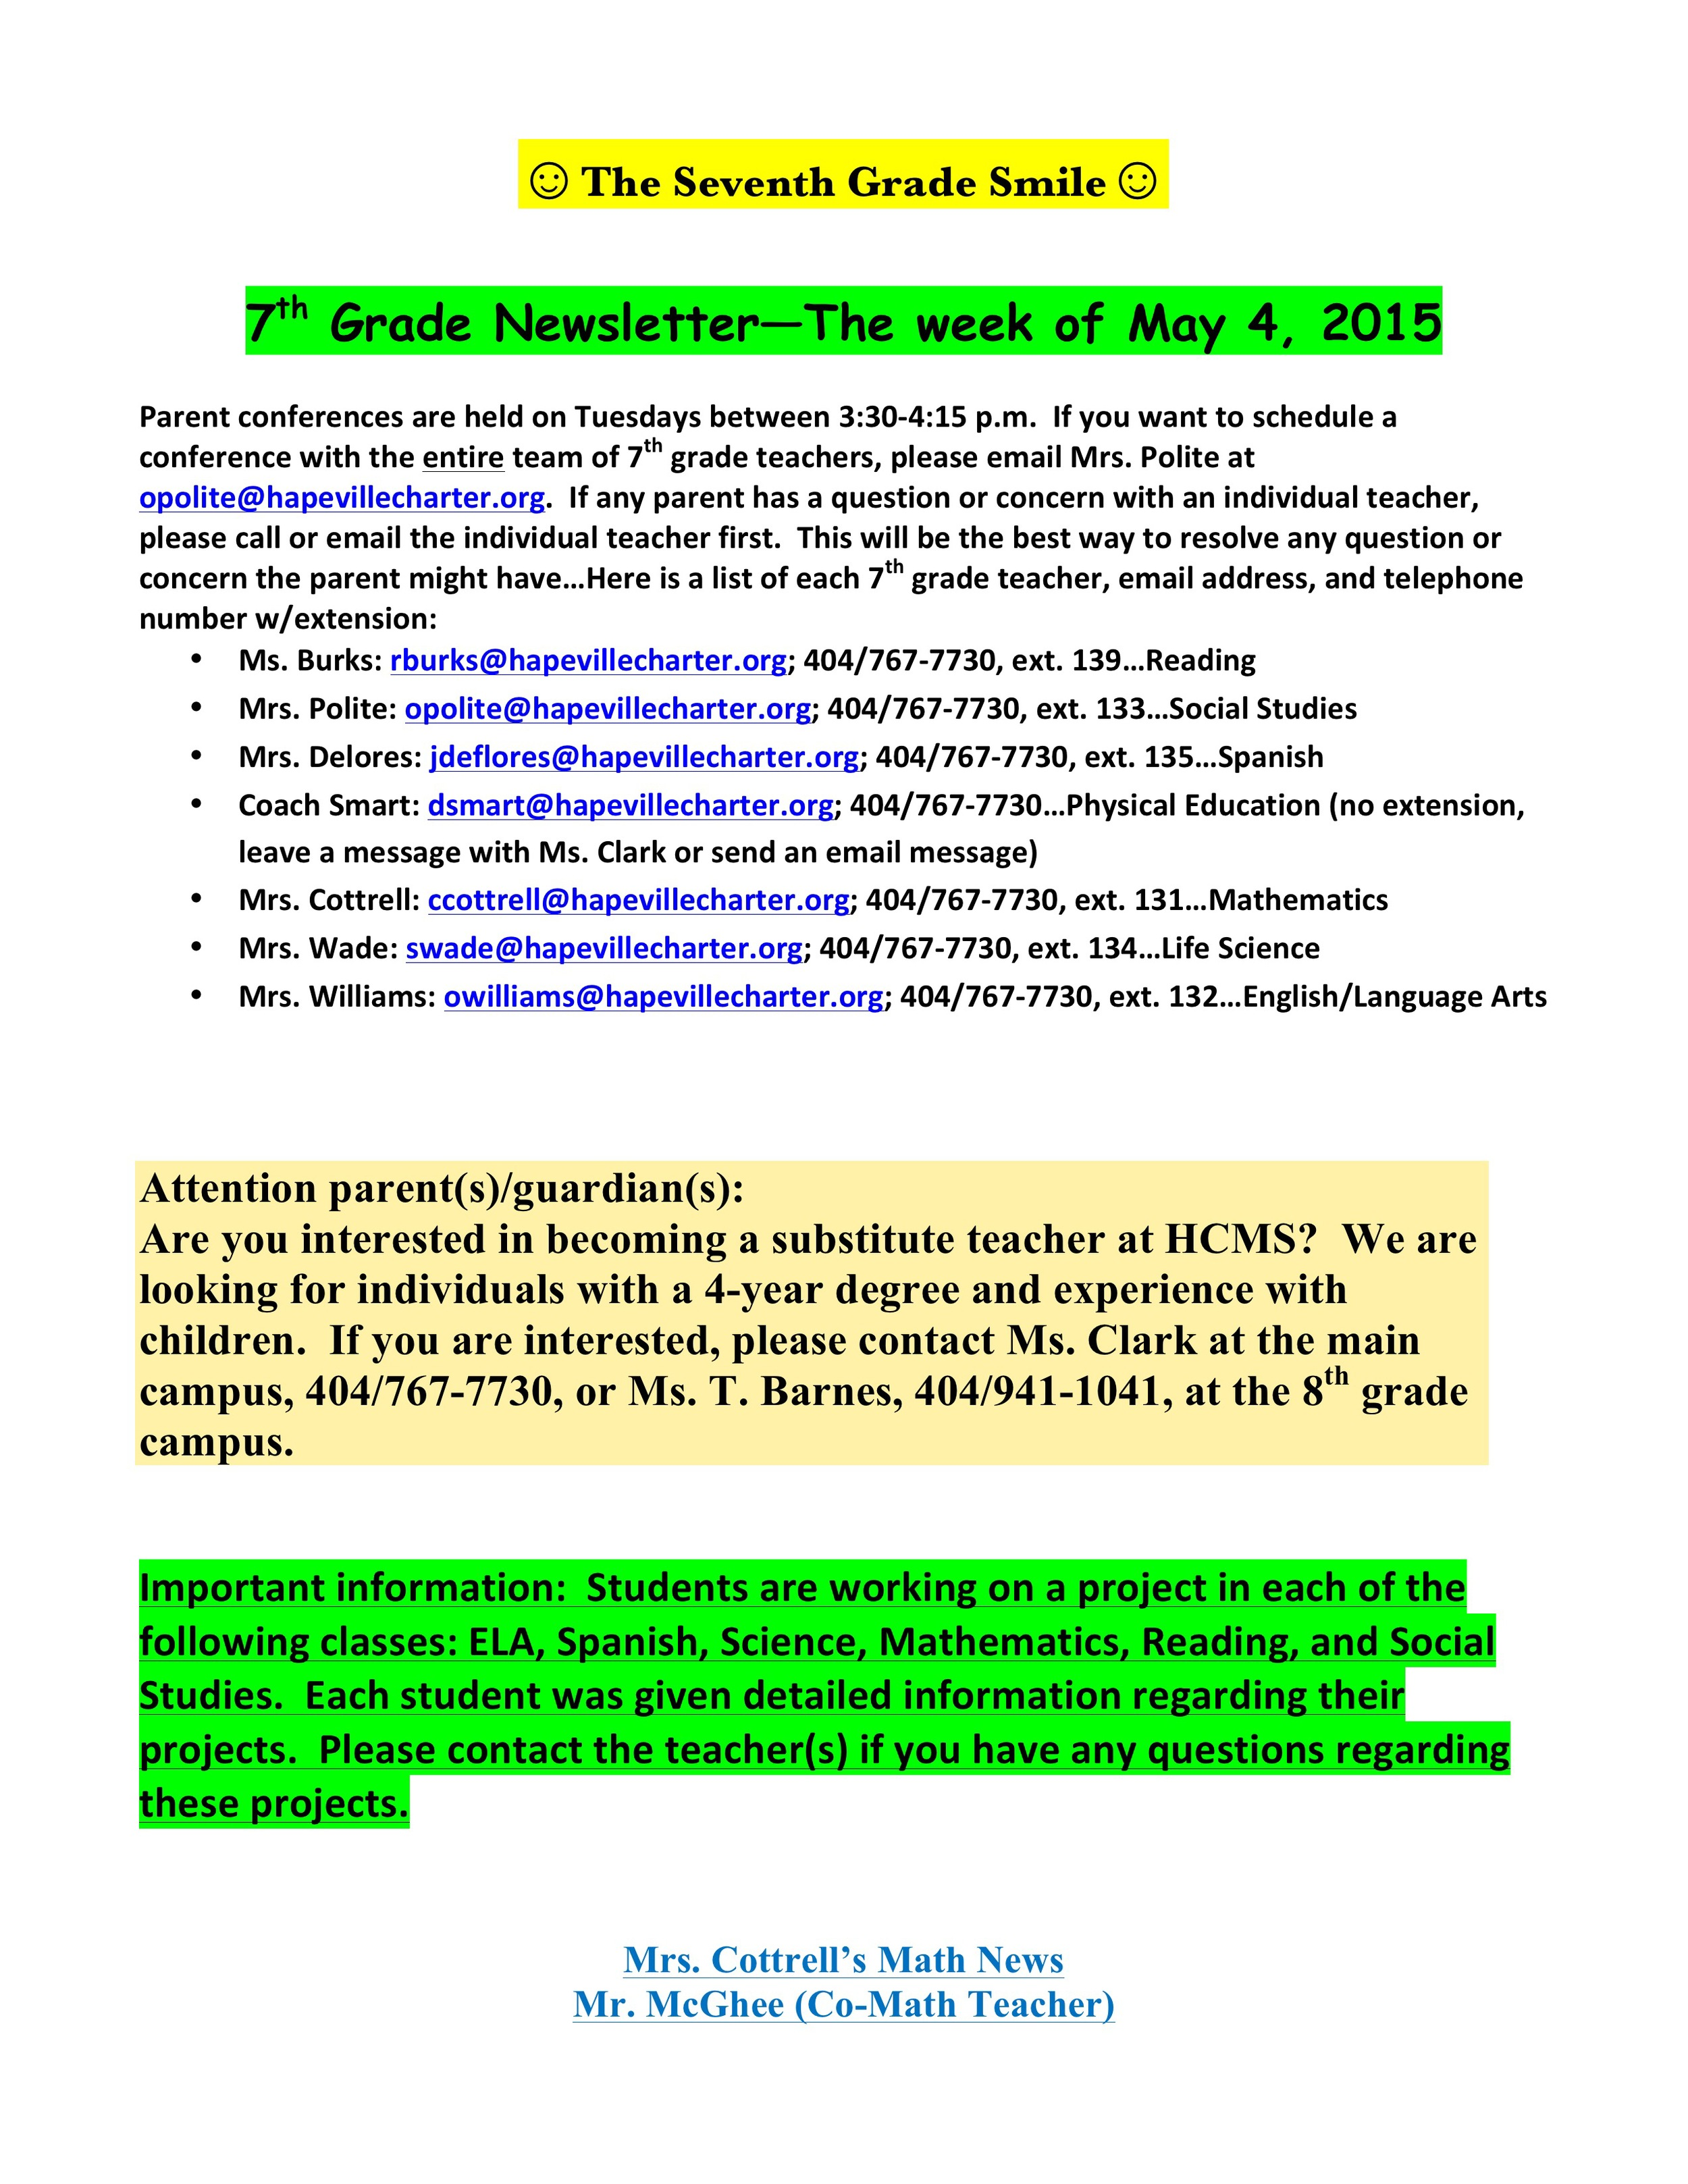 Newsletter Image1...Newsletter for the week of May 4-8, 2015.jpeg